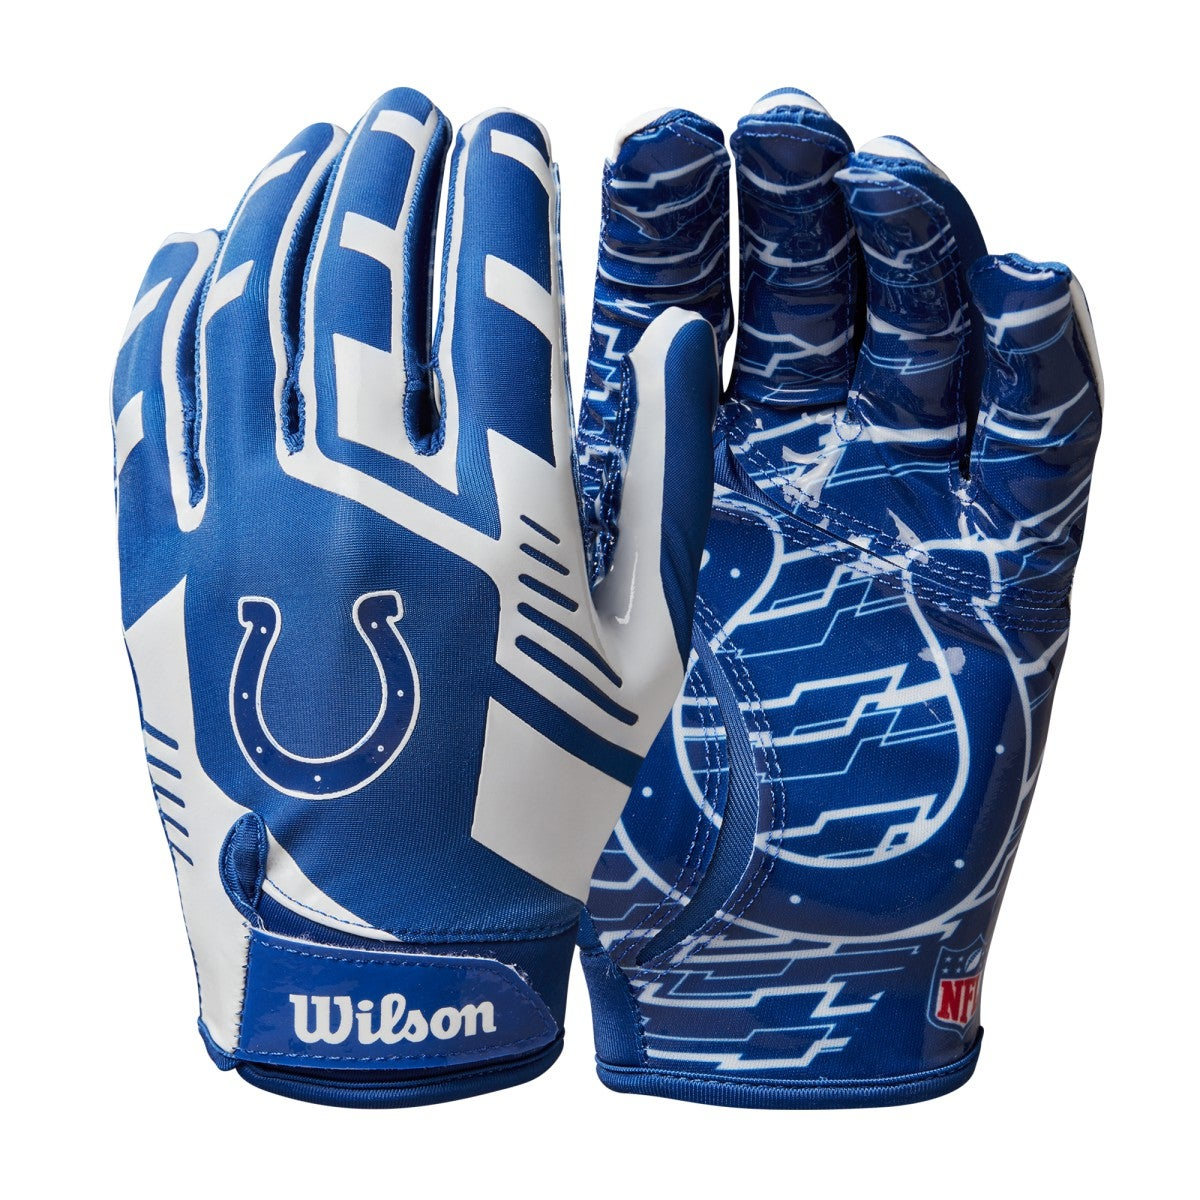 NFL Stretch Fit Receivers Gloves - Indianapolis Colts